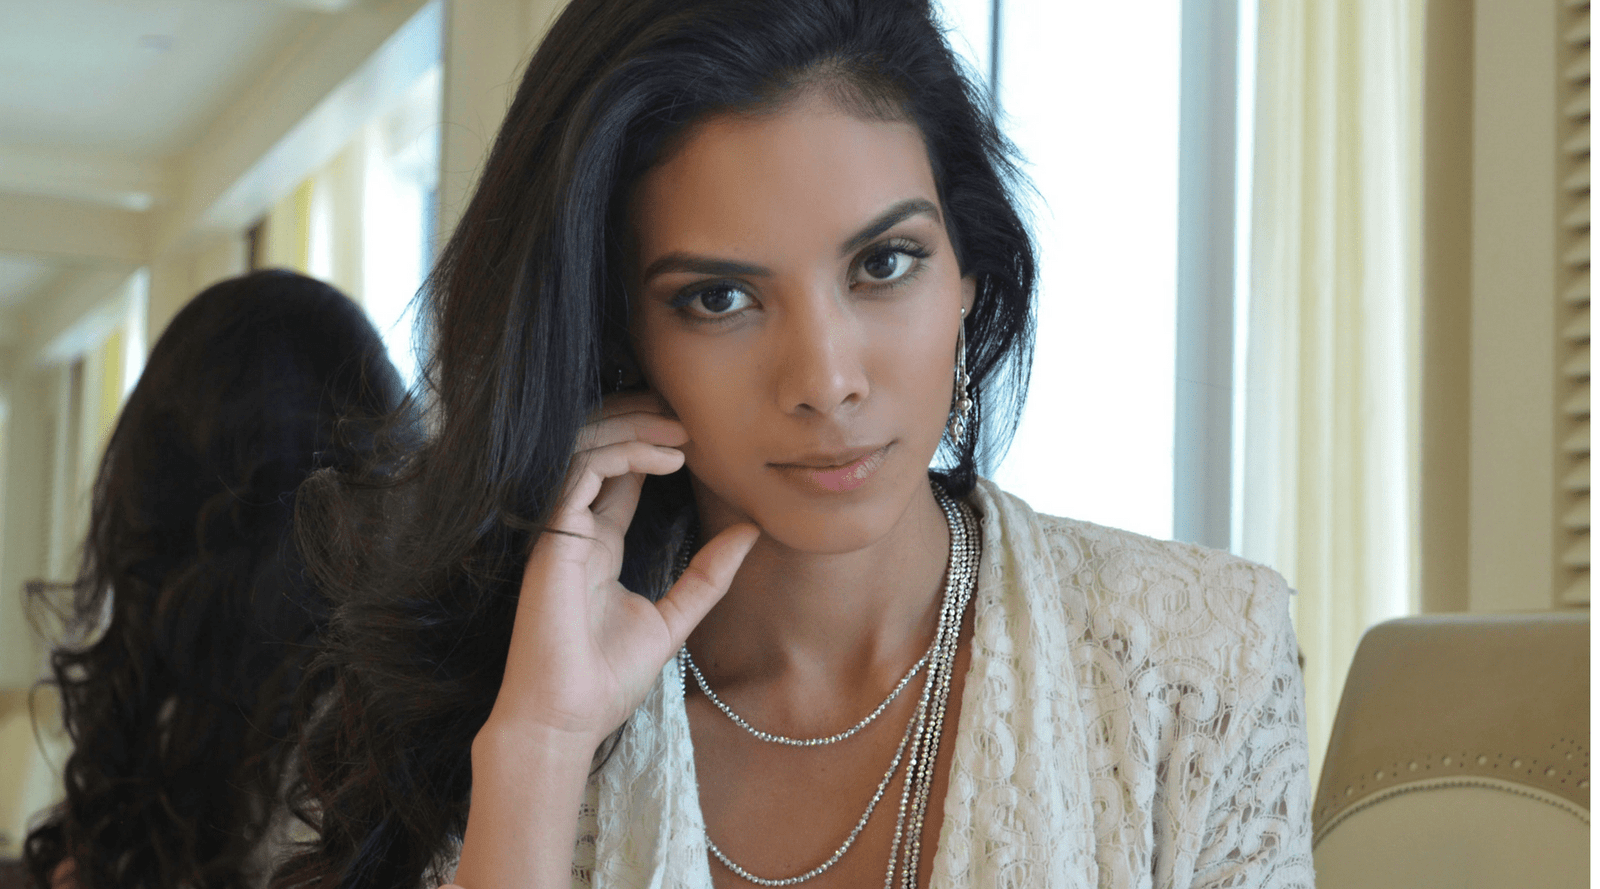 15 Most Popular Necklace Designs For Women